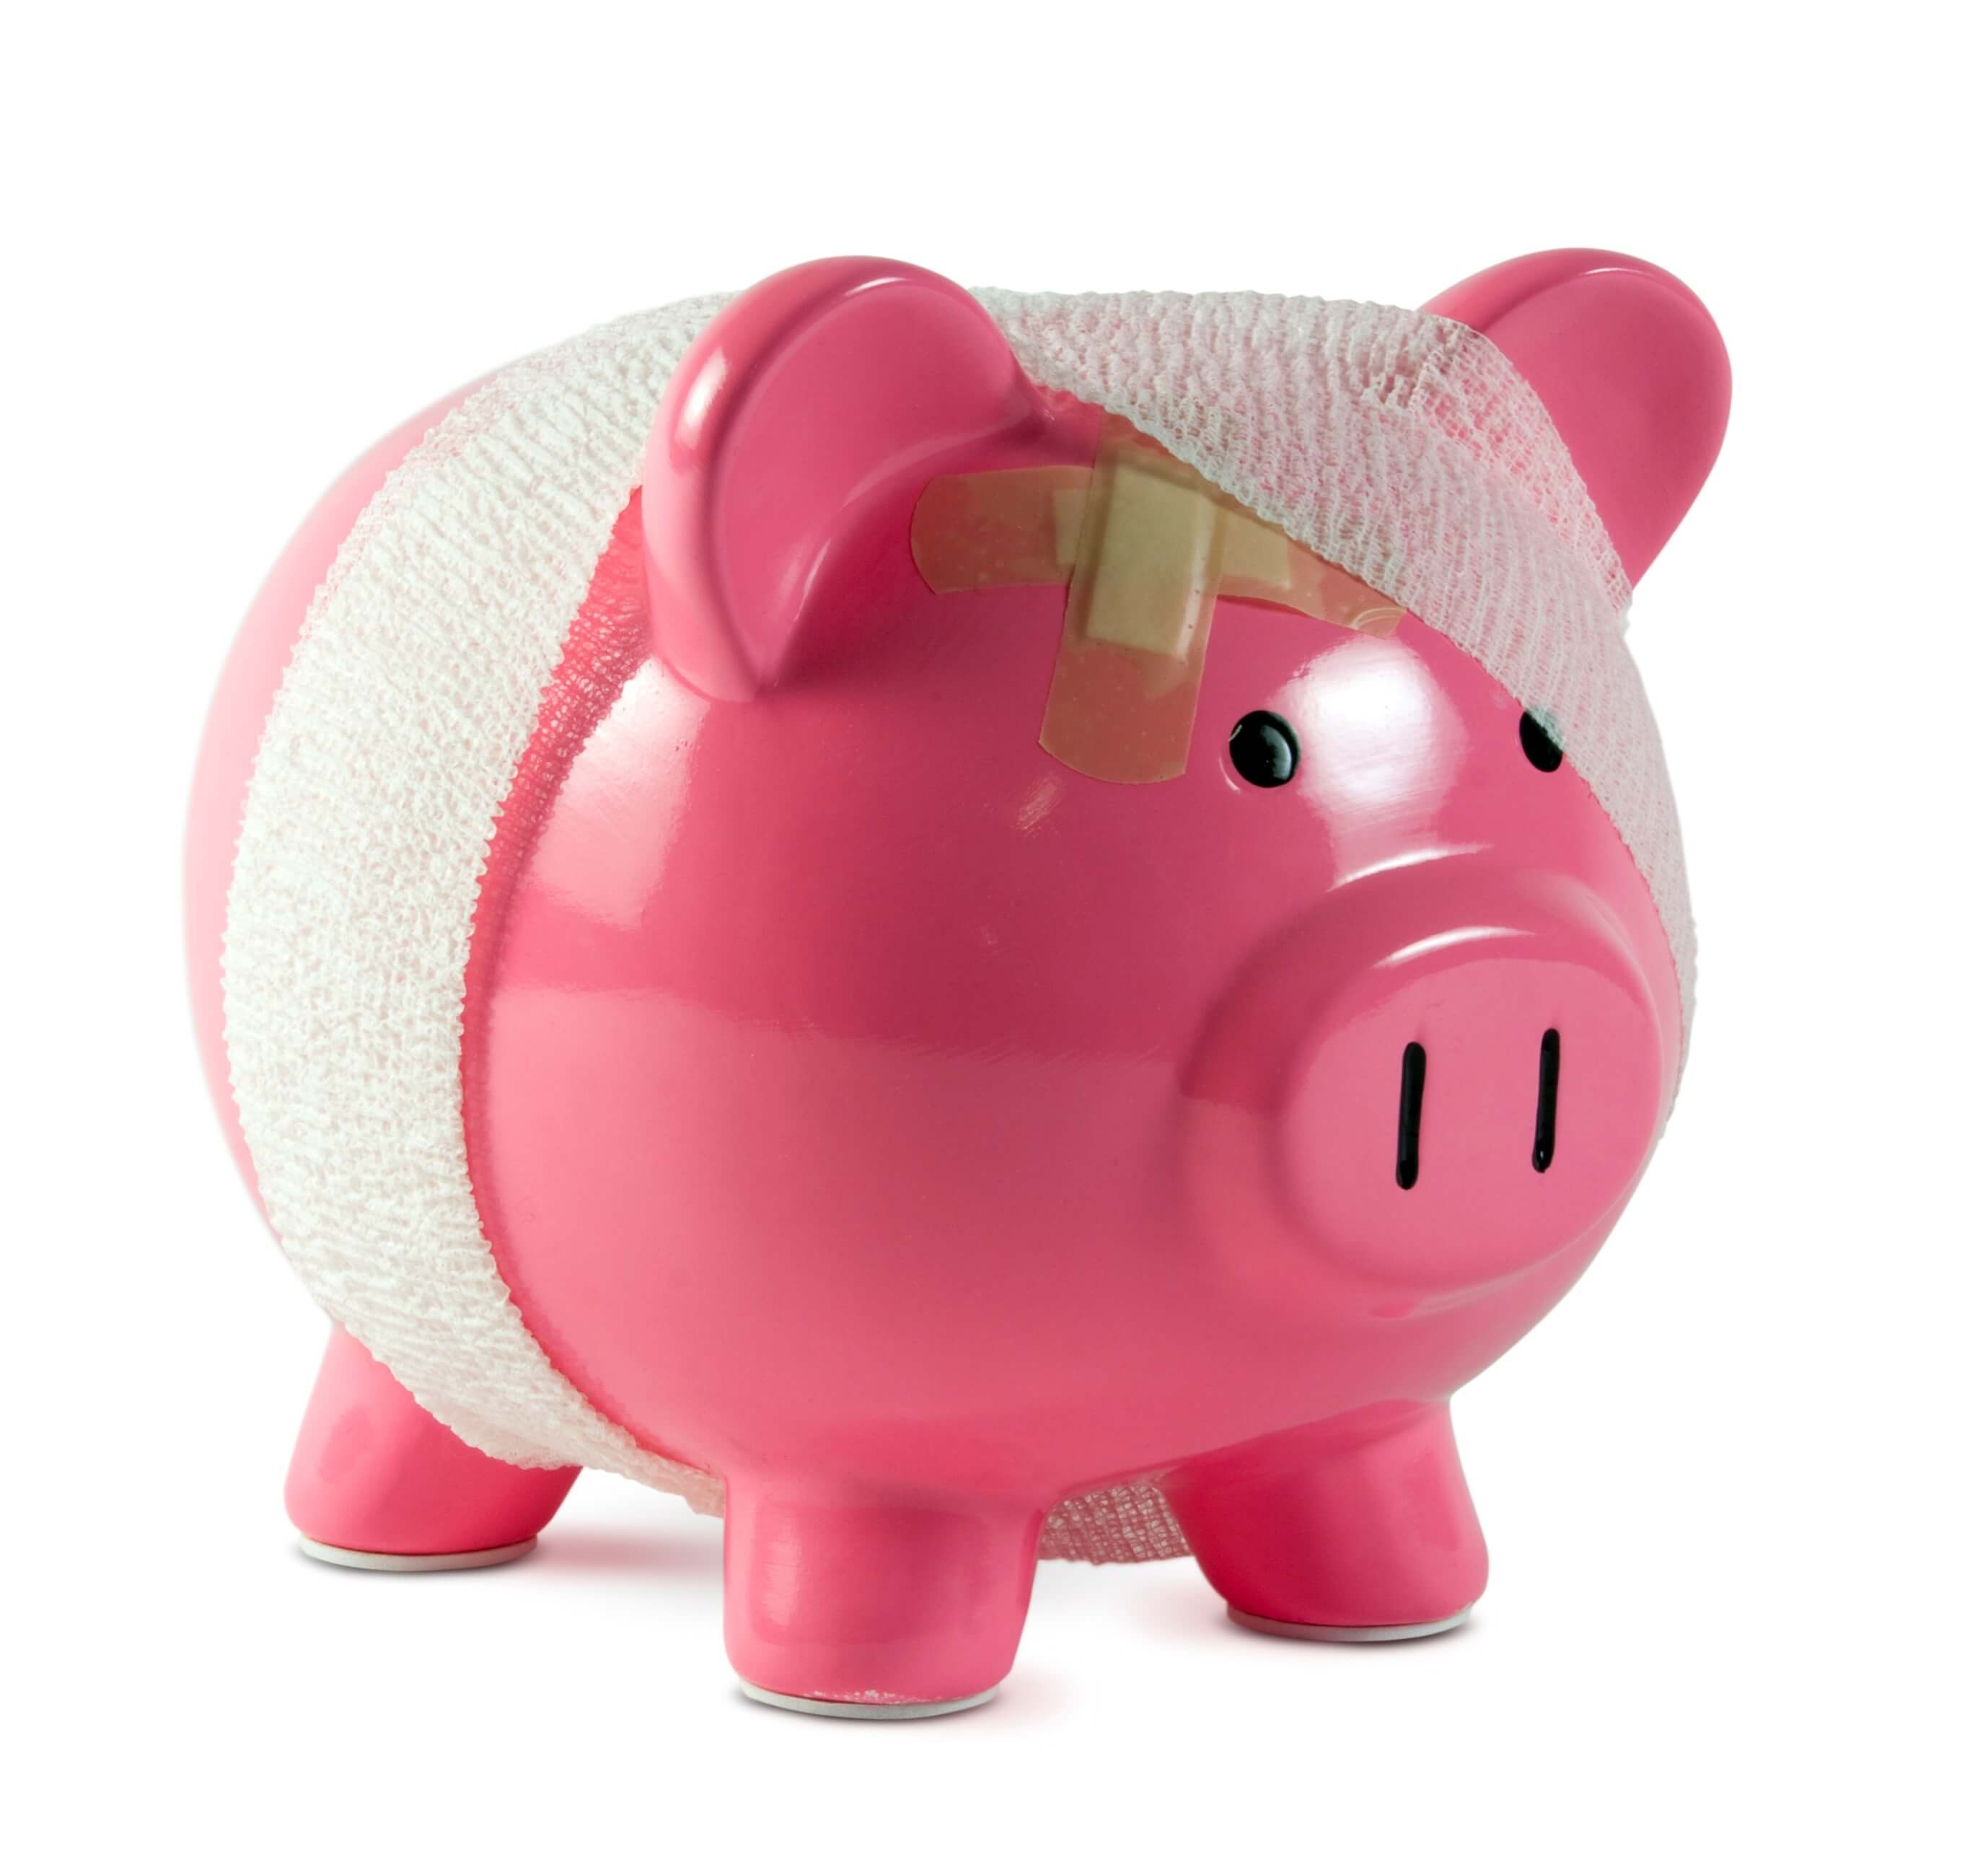 Tips for saving money for healthcare practices